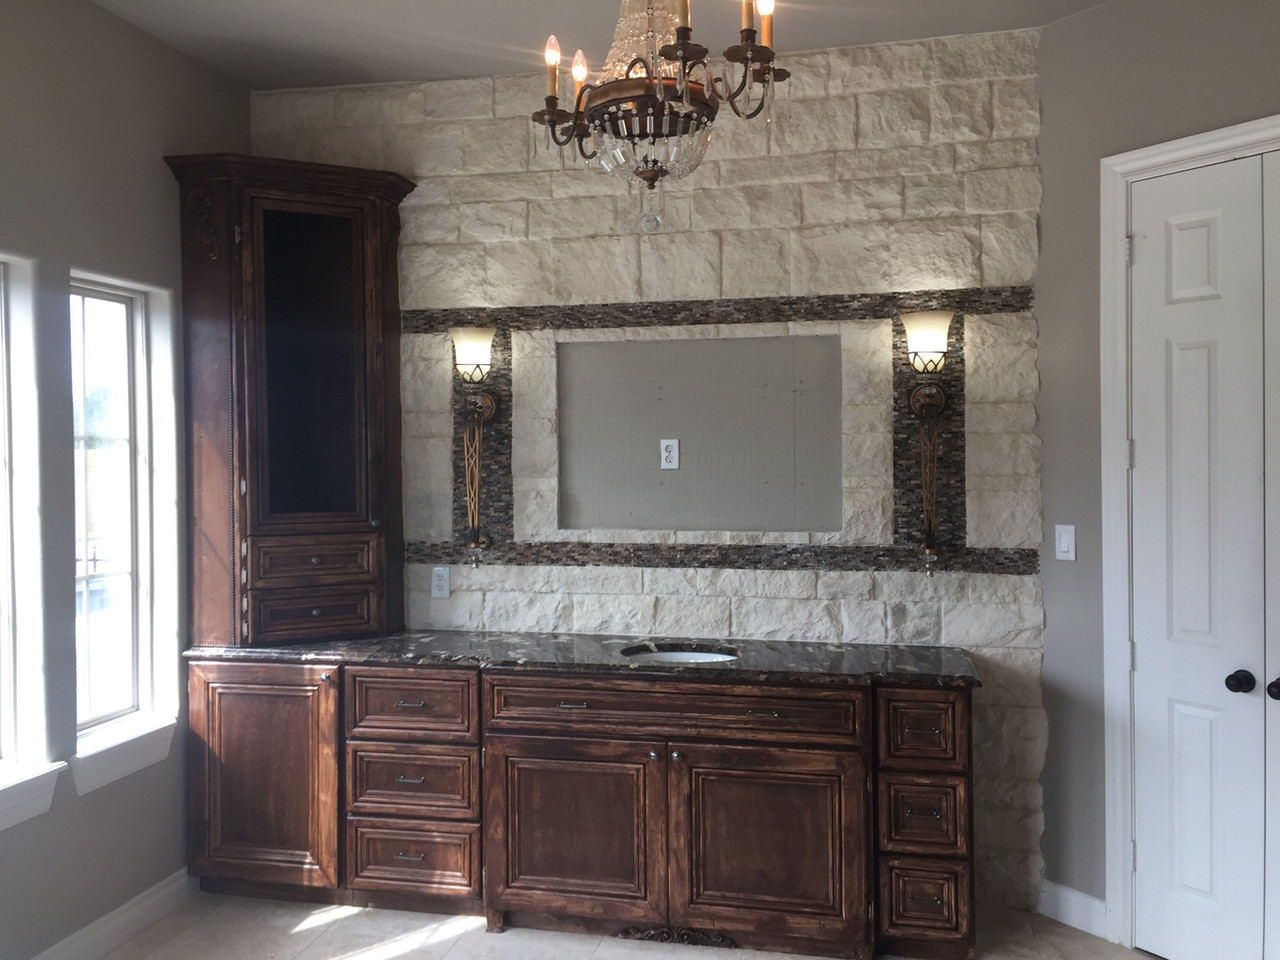 hand built wood cabinetry with brick wall and tv hook up